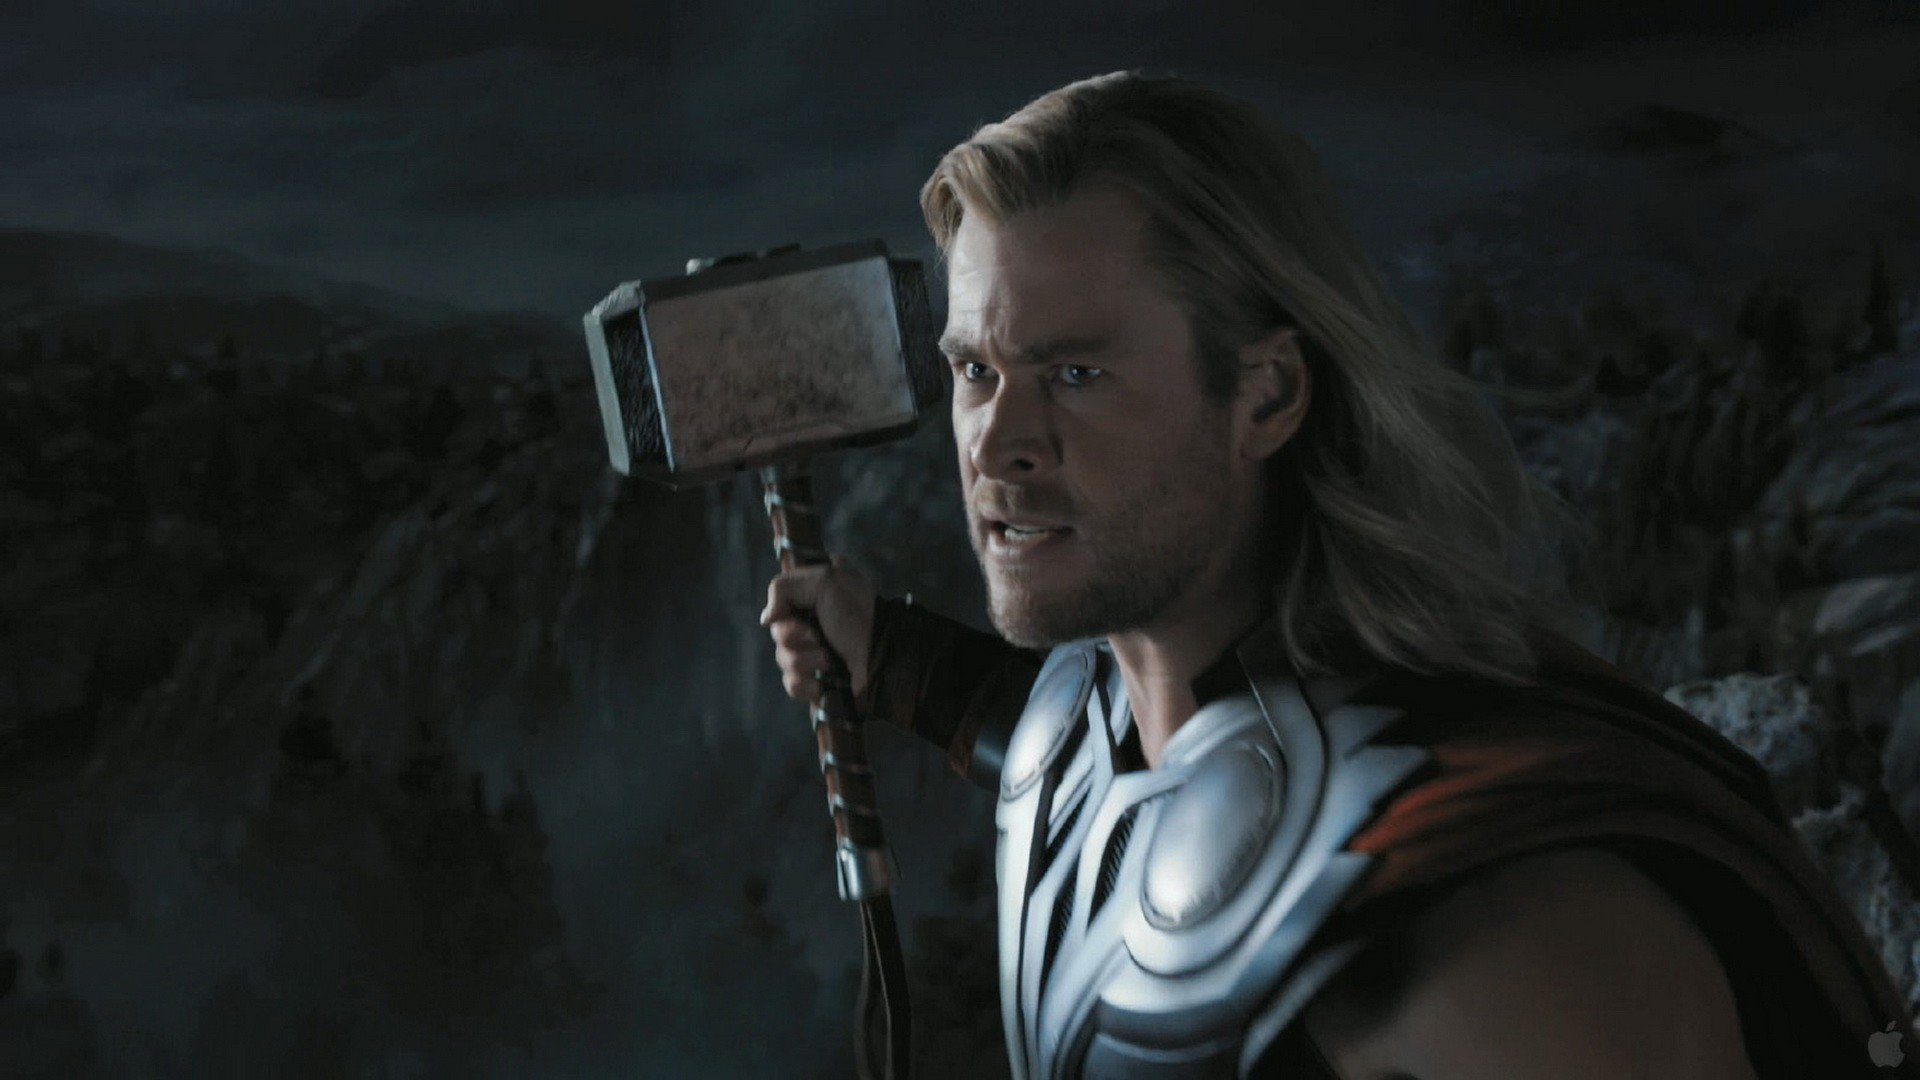 avengers thor hammer related - photo #40